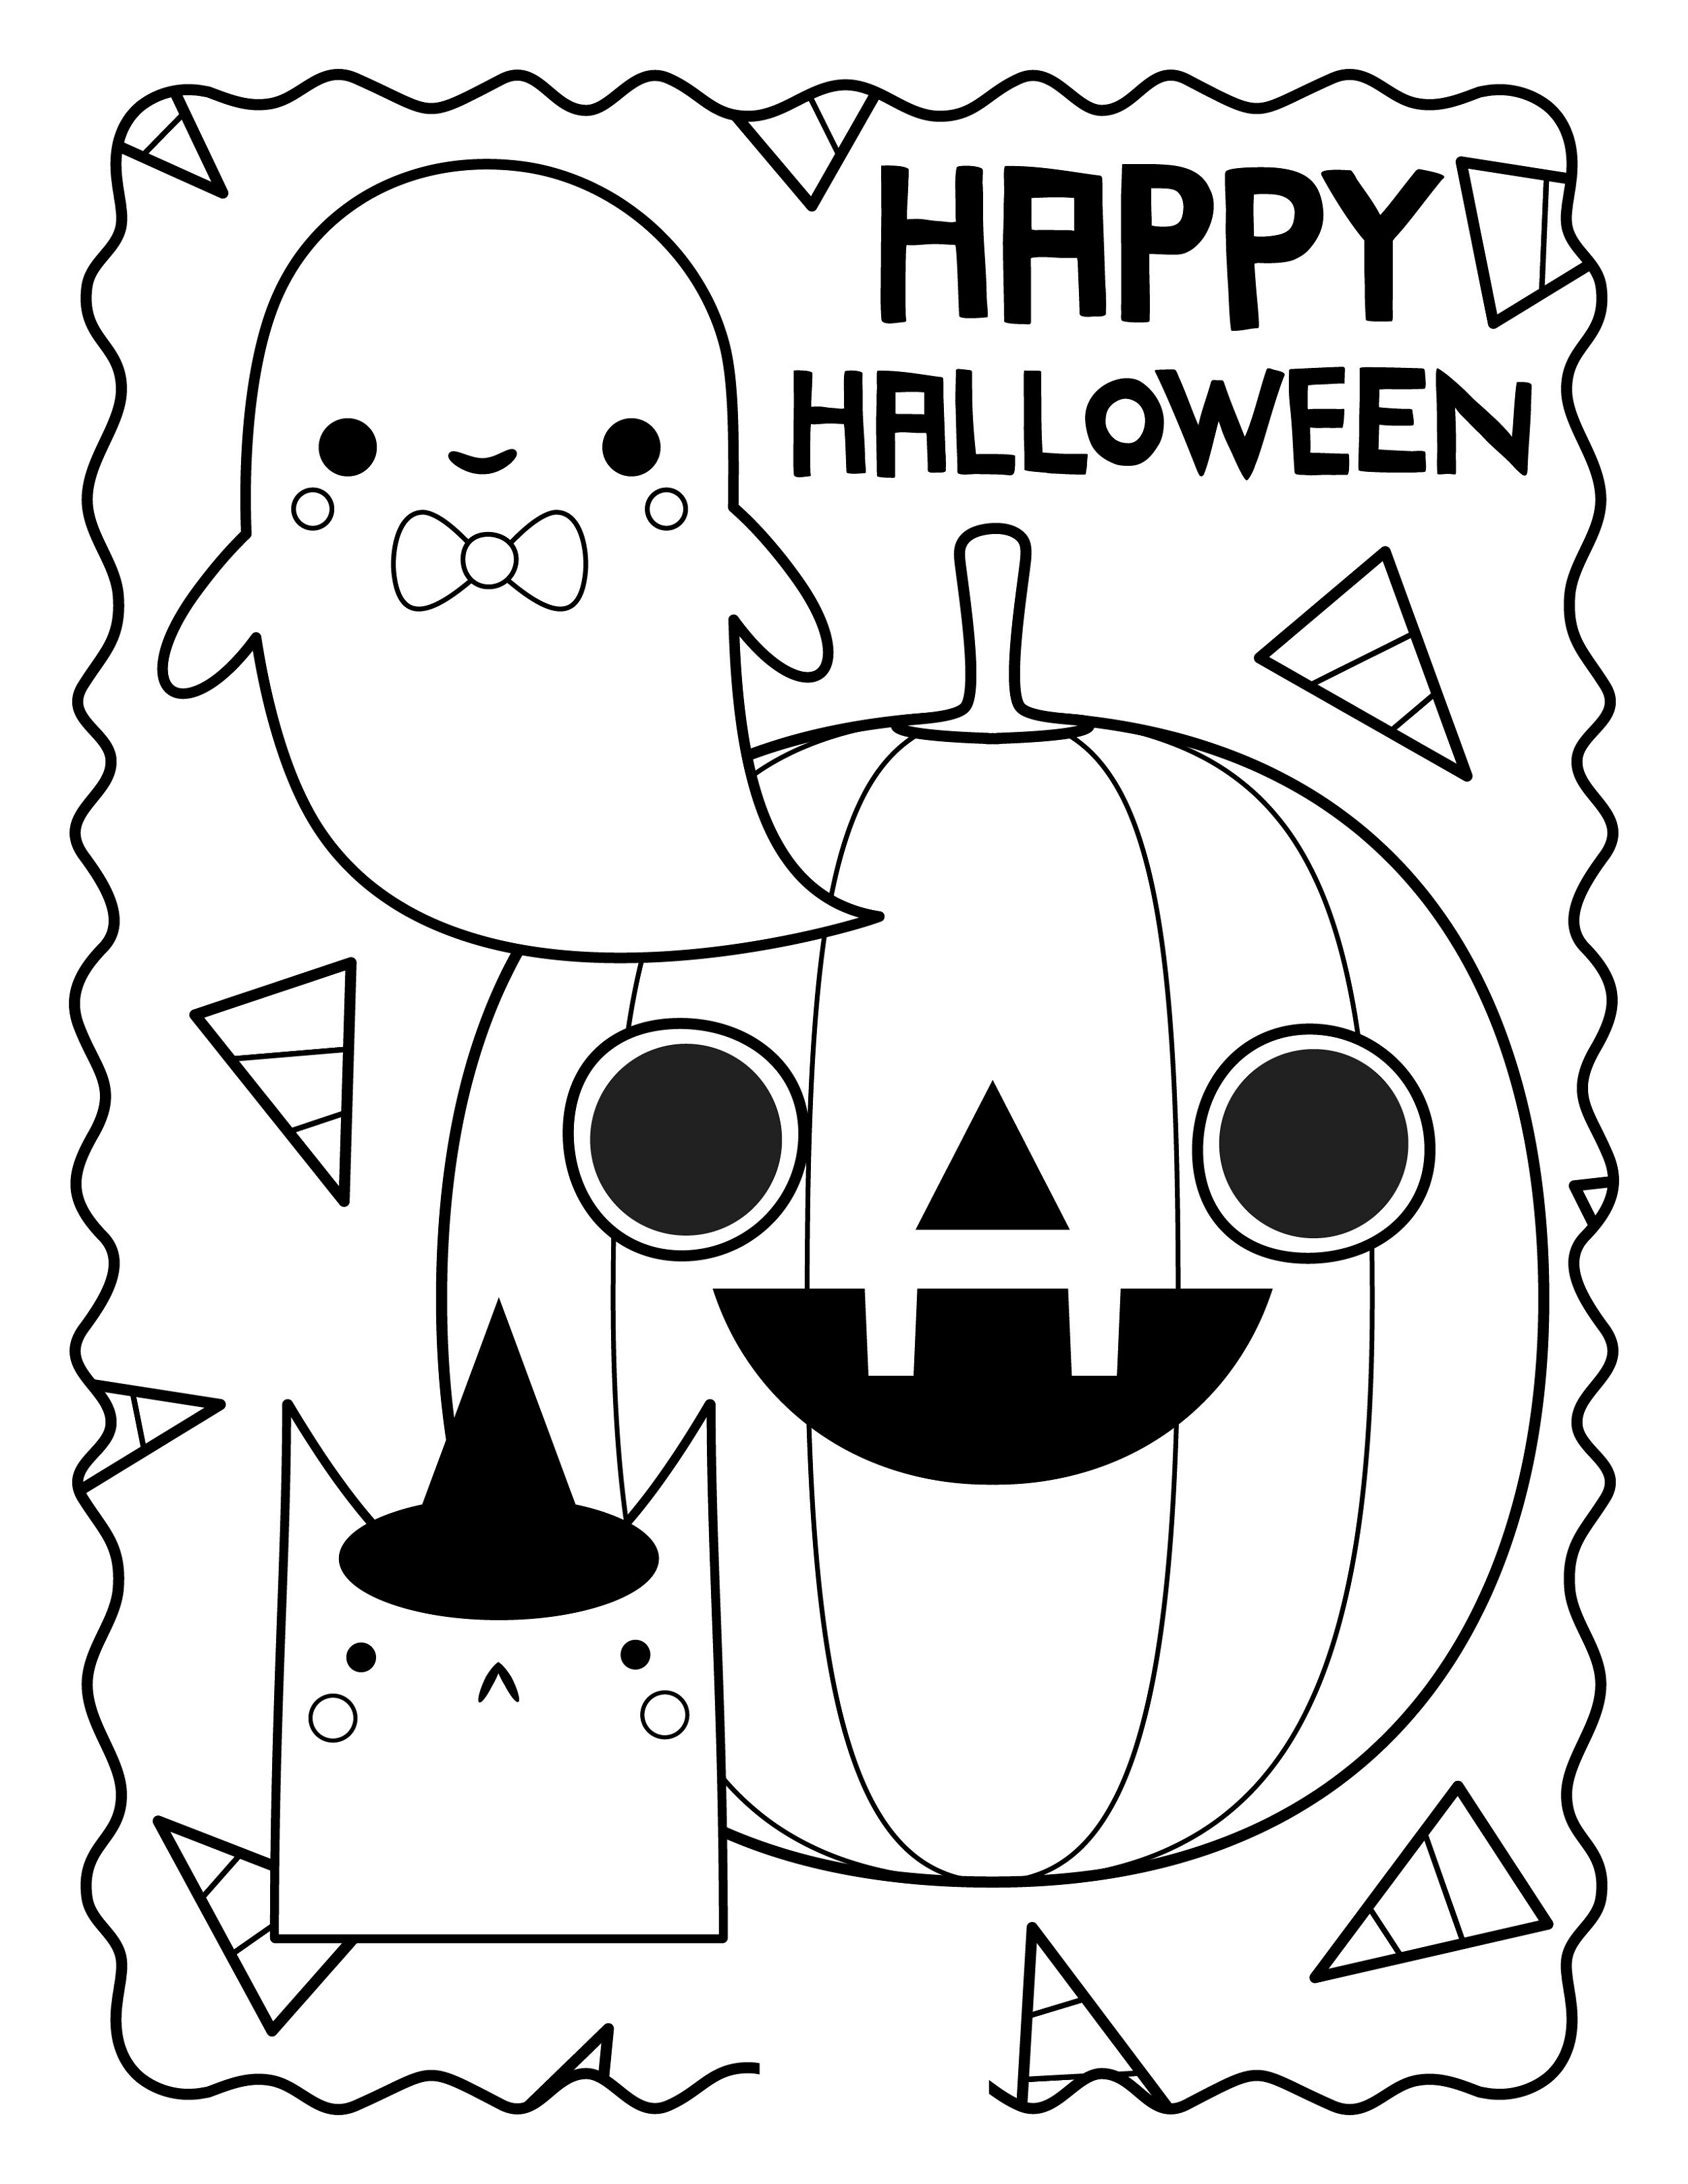 Halloween Coloring Sheets for Celebrating Halloween | K5 ...